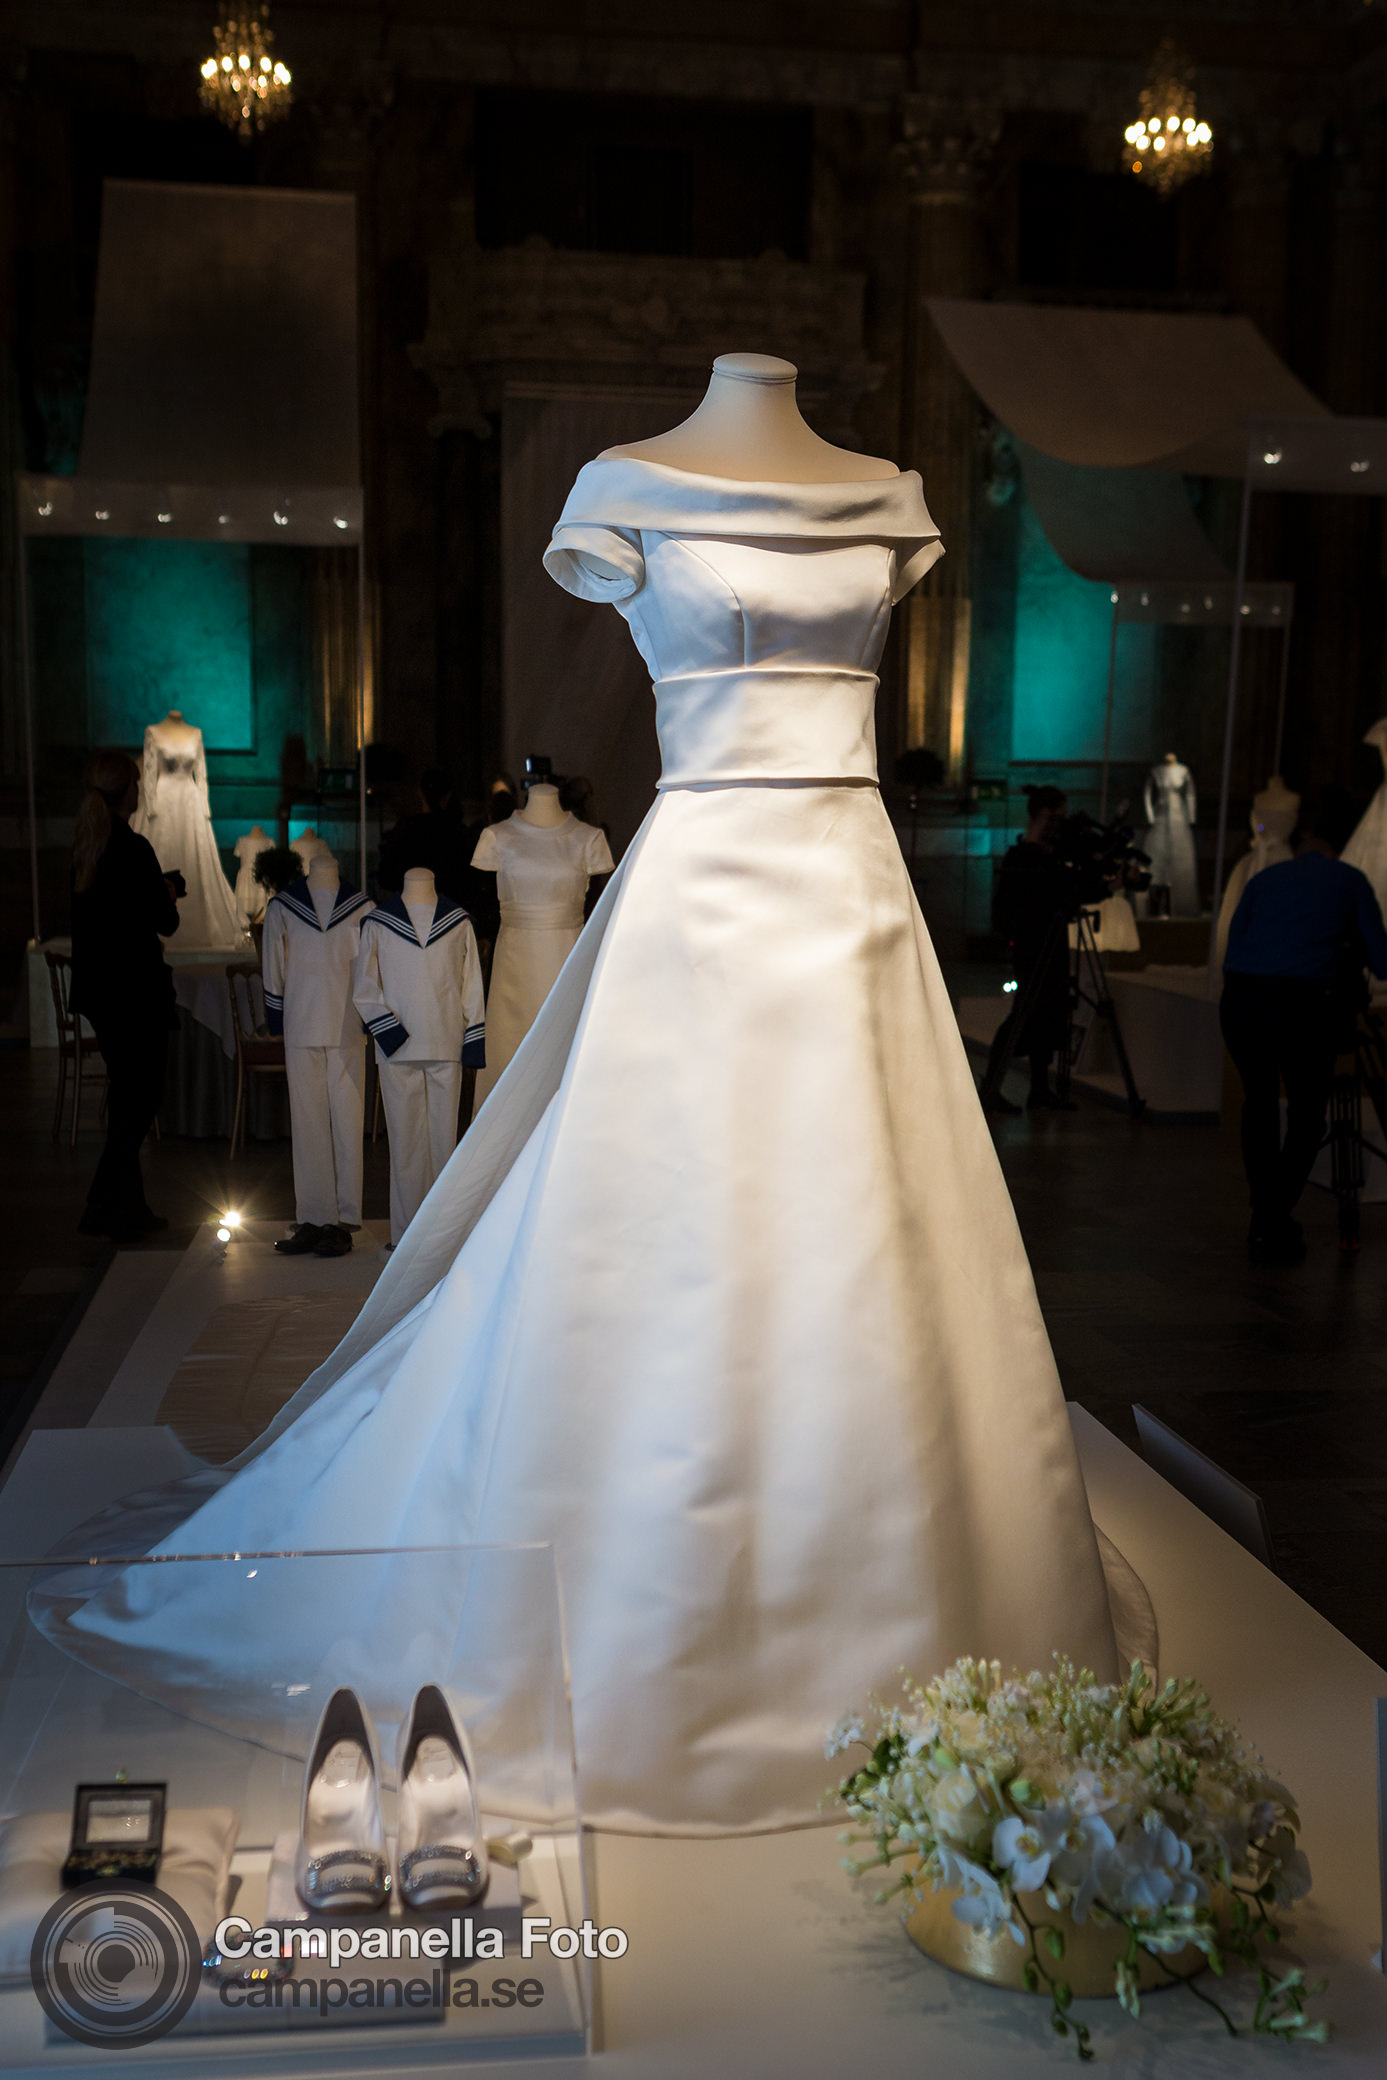 Royal wedding dresses exhibition - Michael Campanella Photography